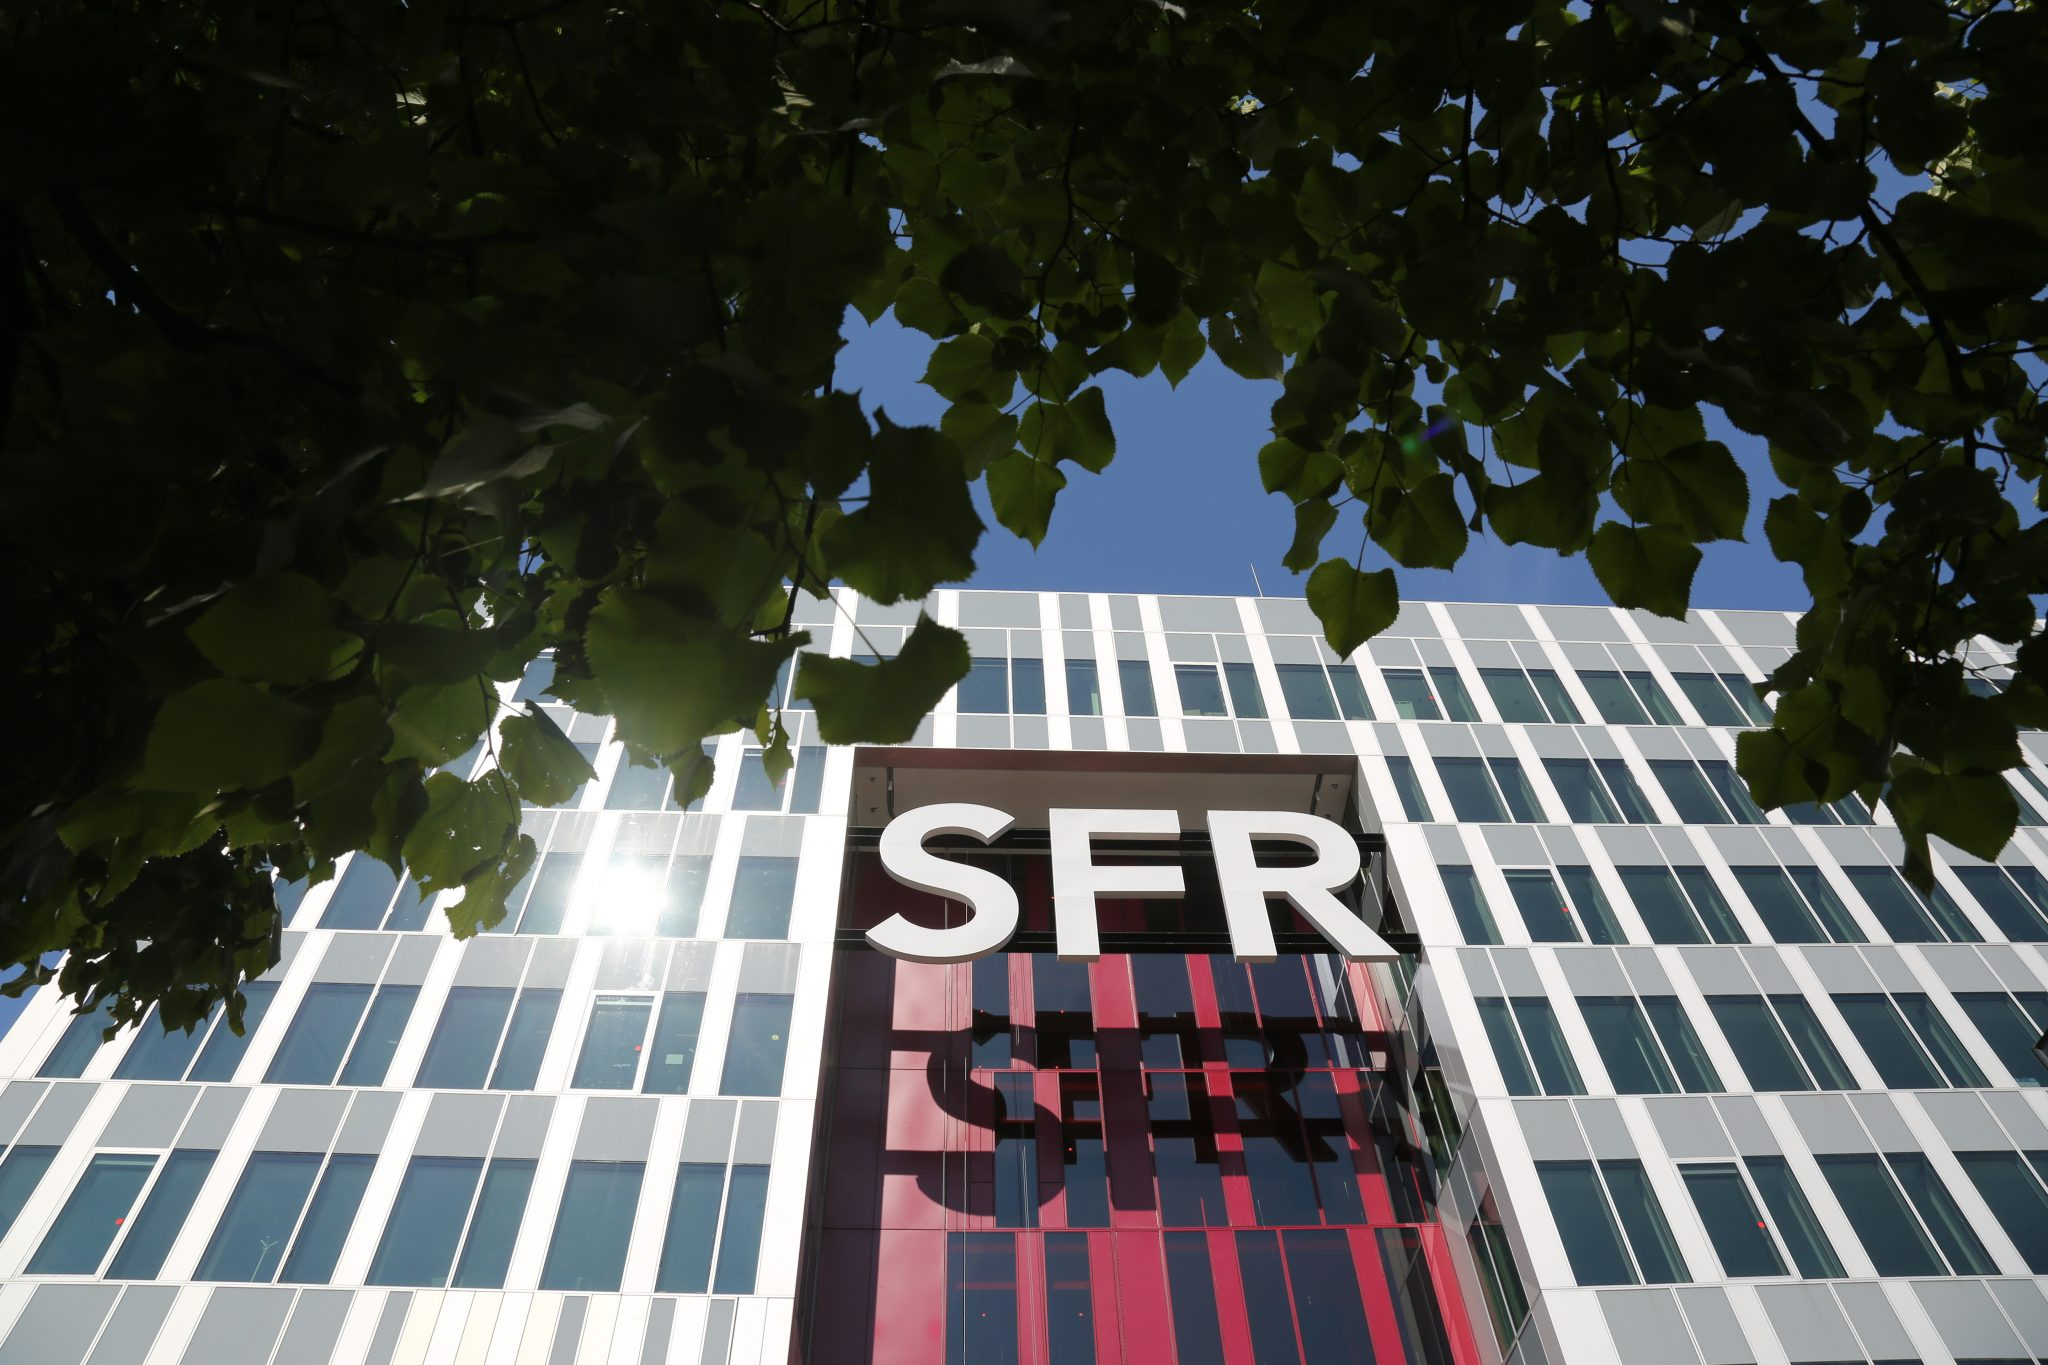 Sfr Velizy Altice France Unveils Initiatives For Growth Renames Sfr Sport